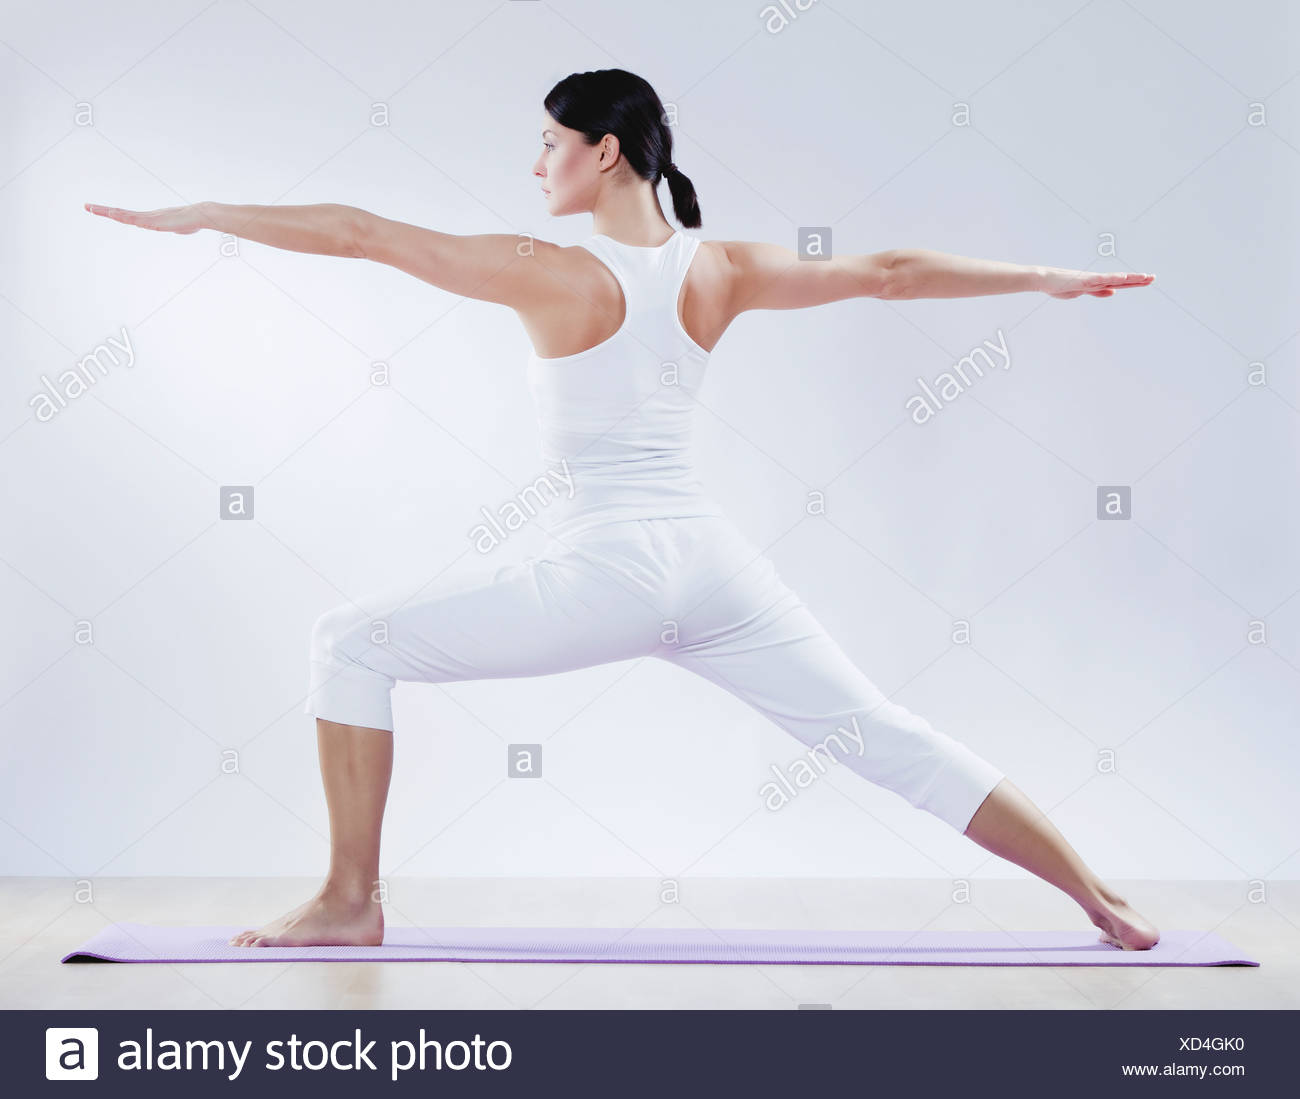 Mid adult woman doing yoga against white background - Stock Image